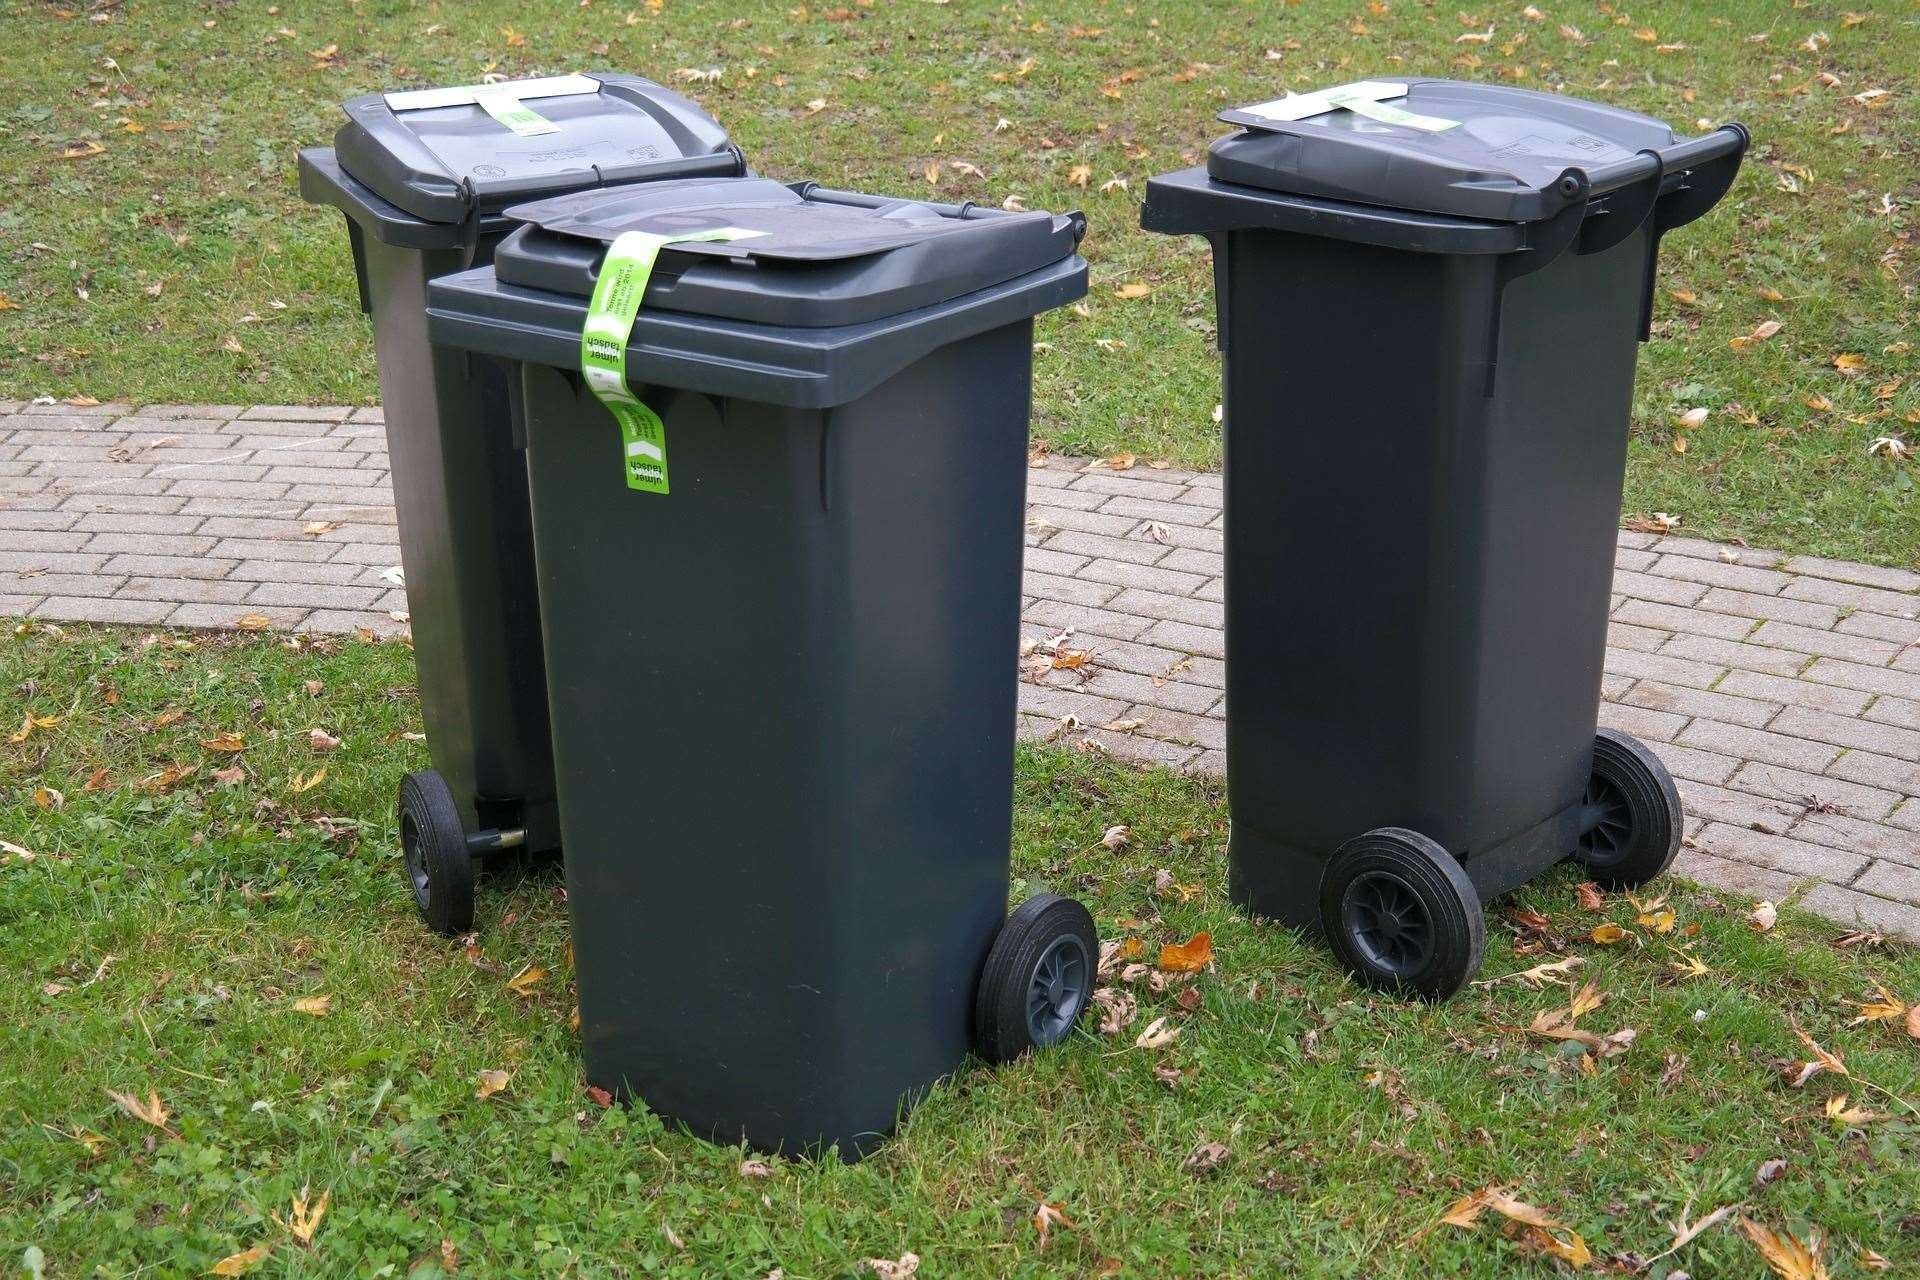 Bins have not been emptied in some areas